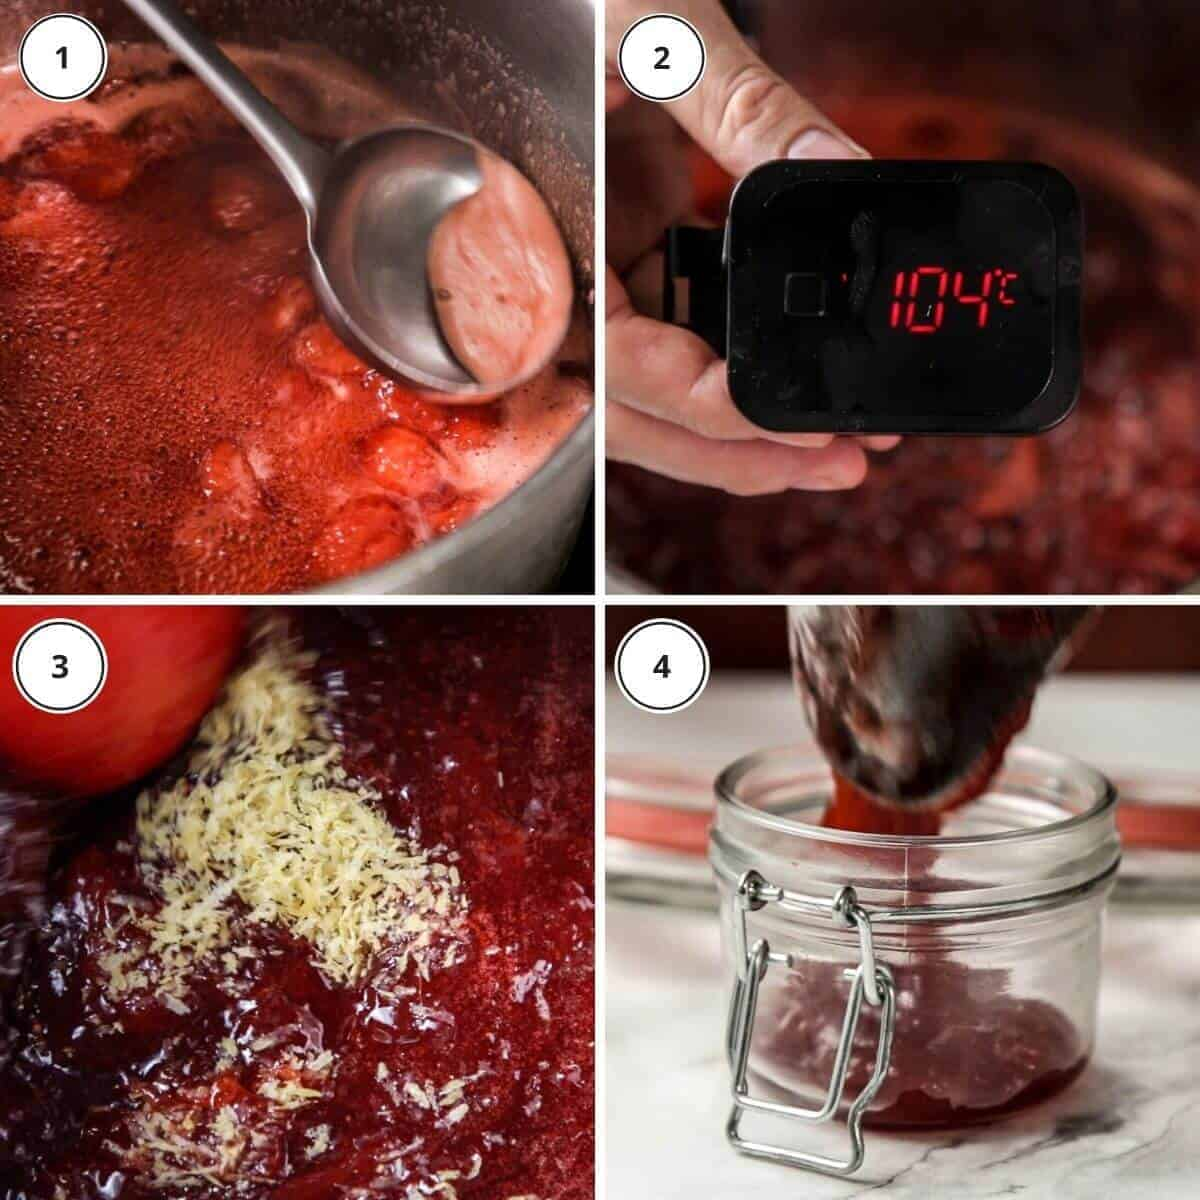 step by step cooking instructions of written steps